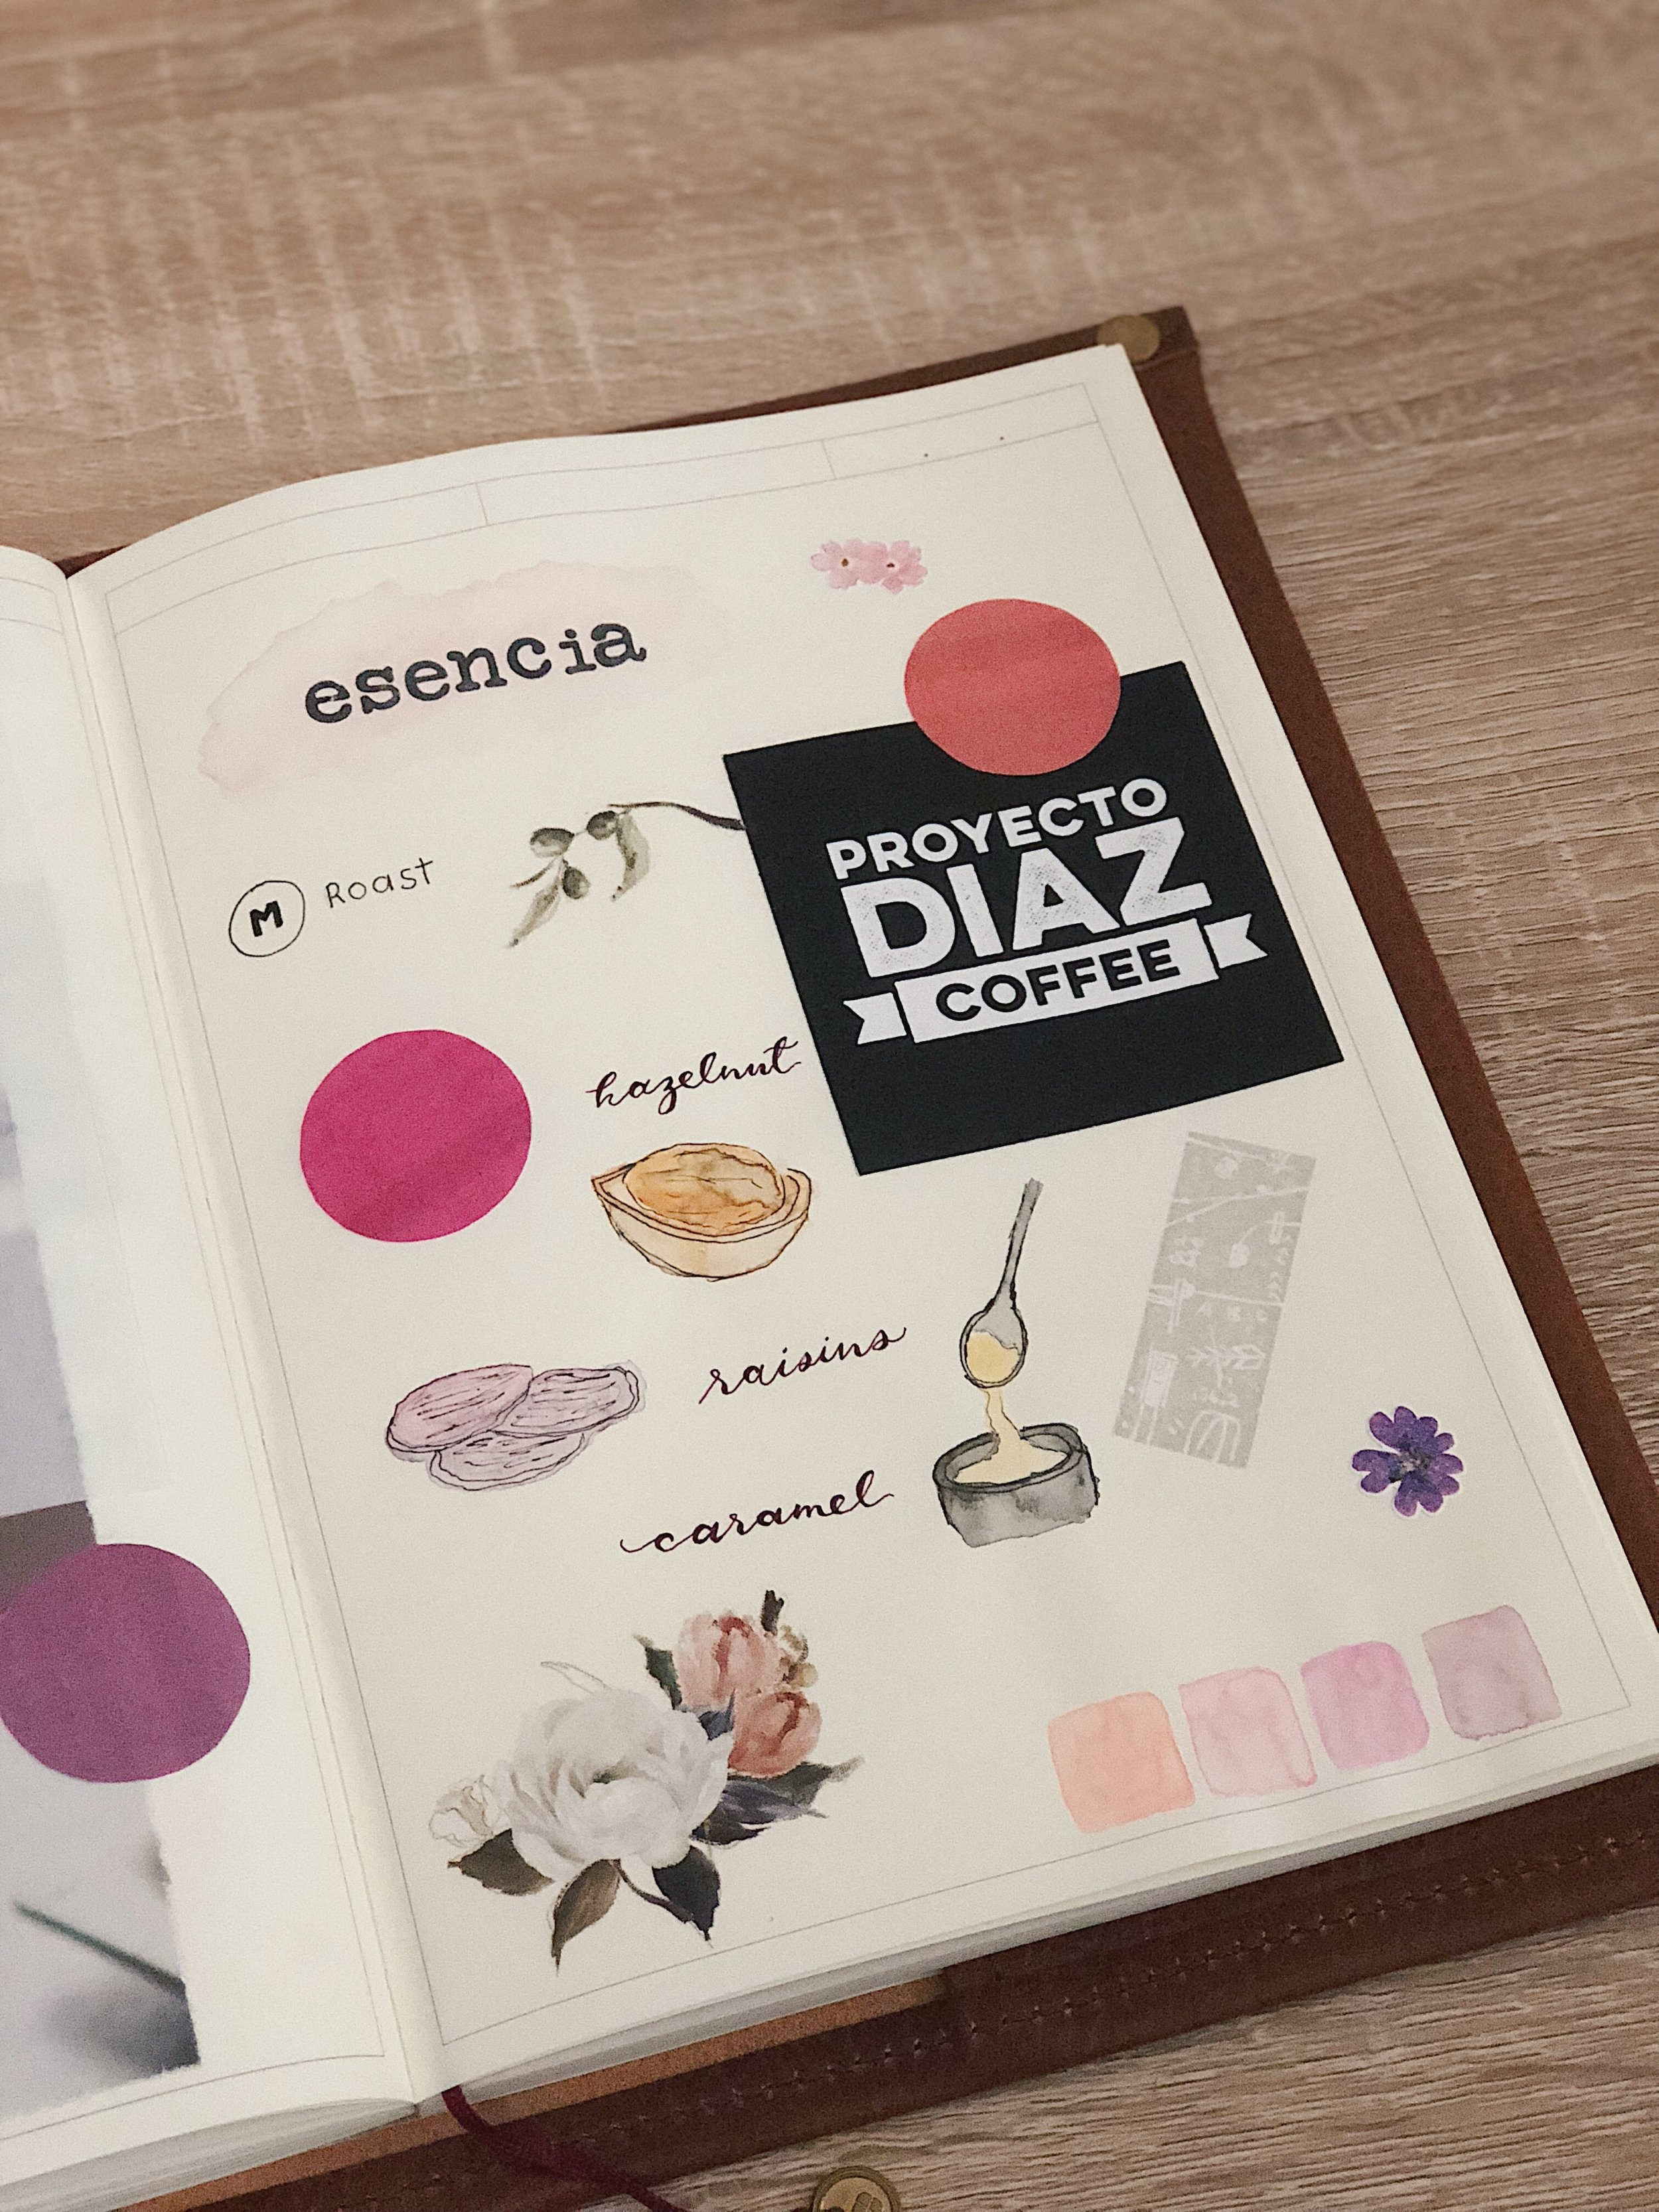 Illustrating the flavors of Proyecto Diaz's Esencia blend.